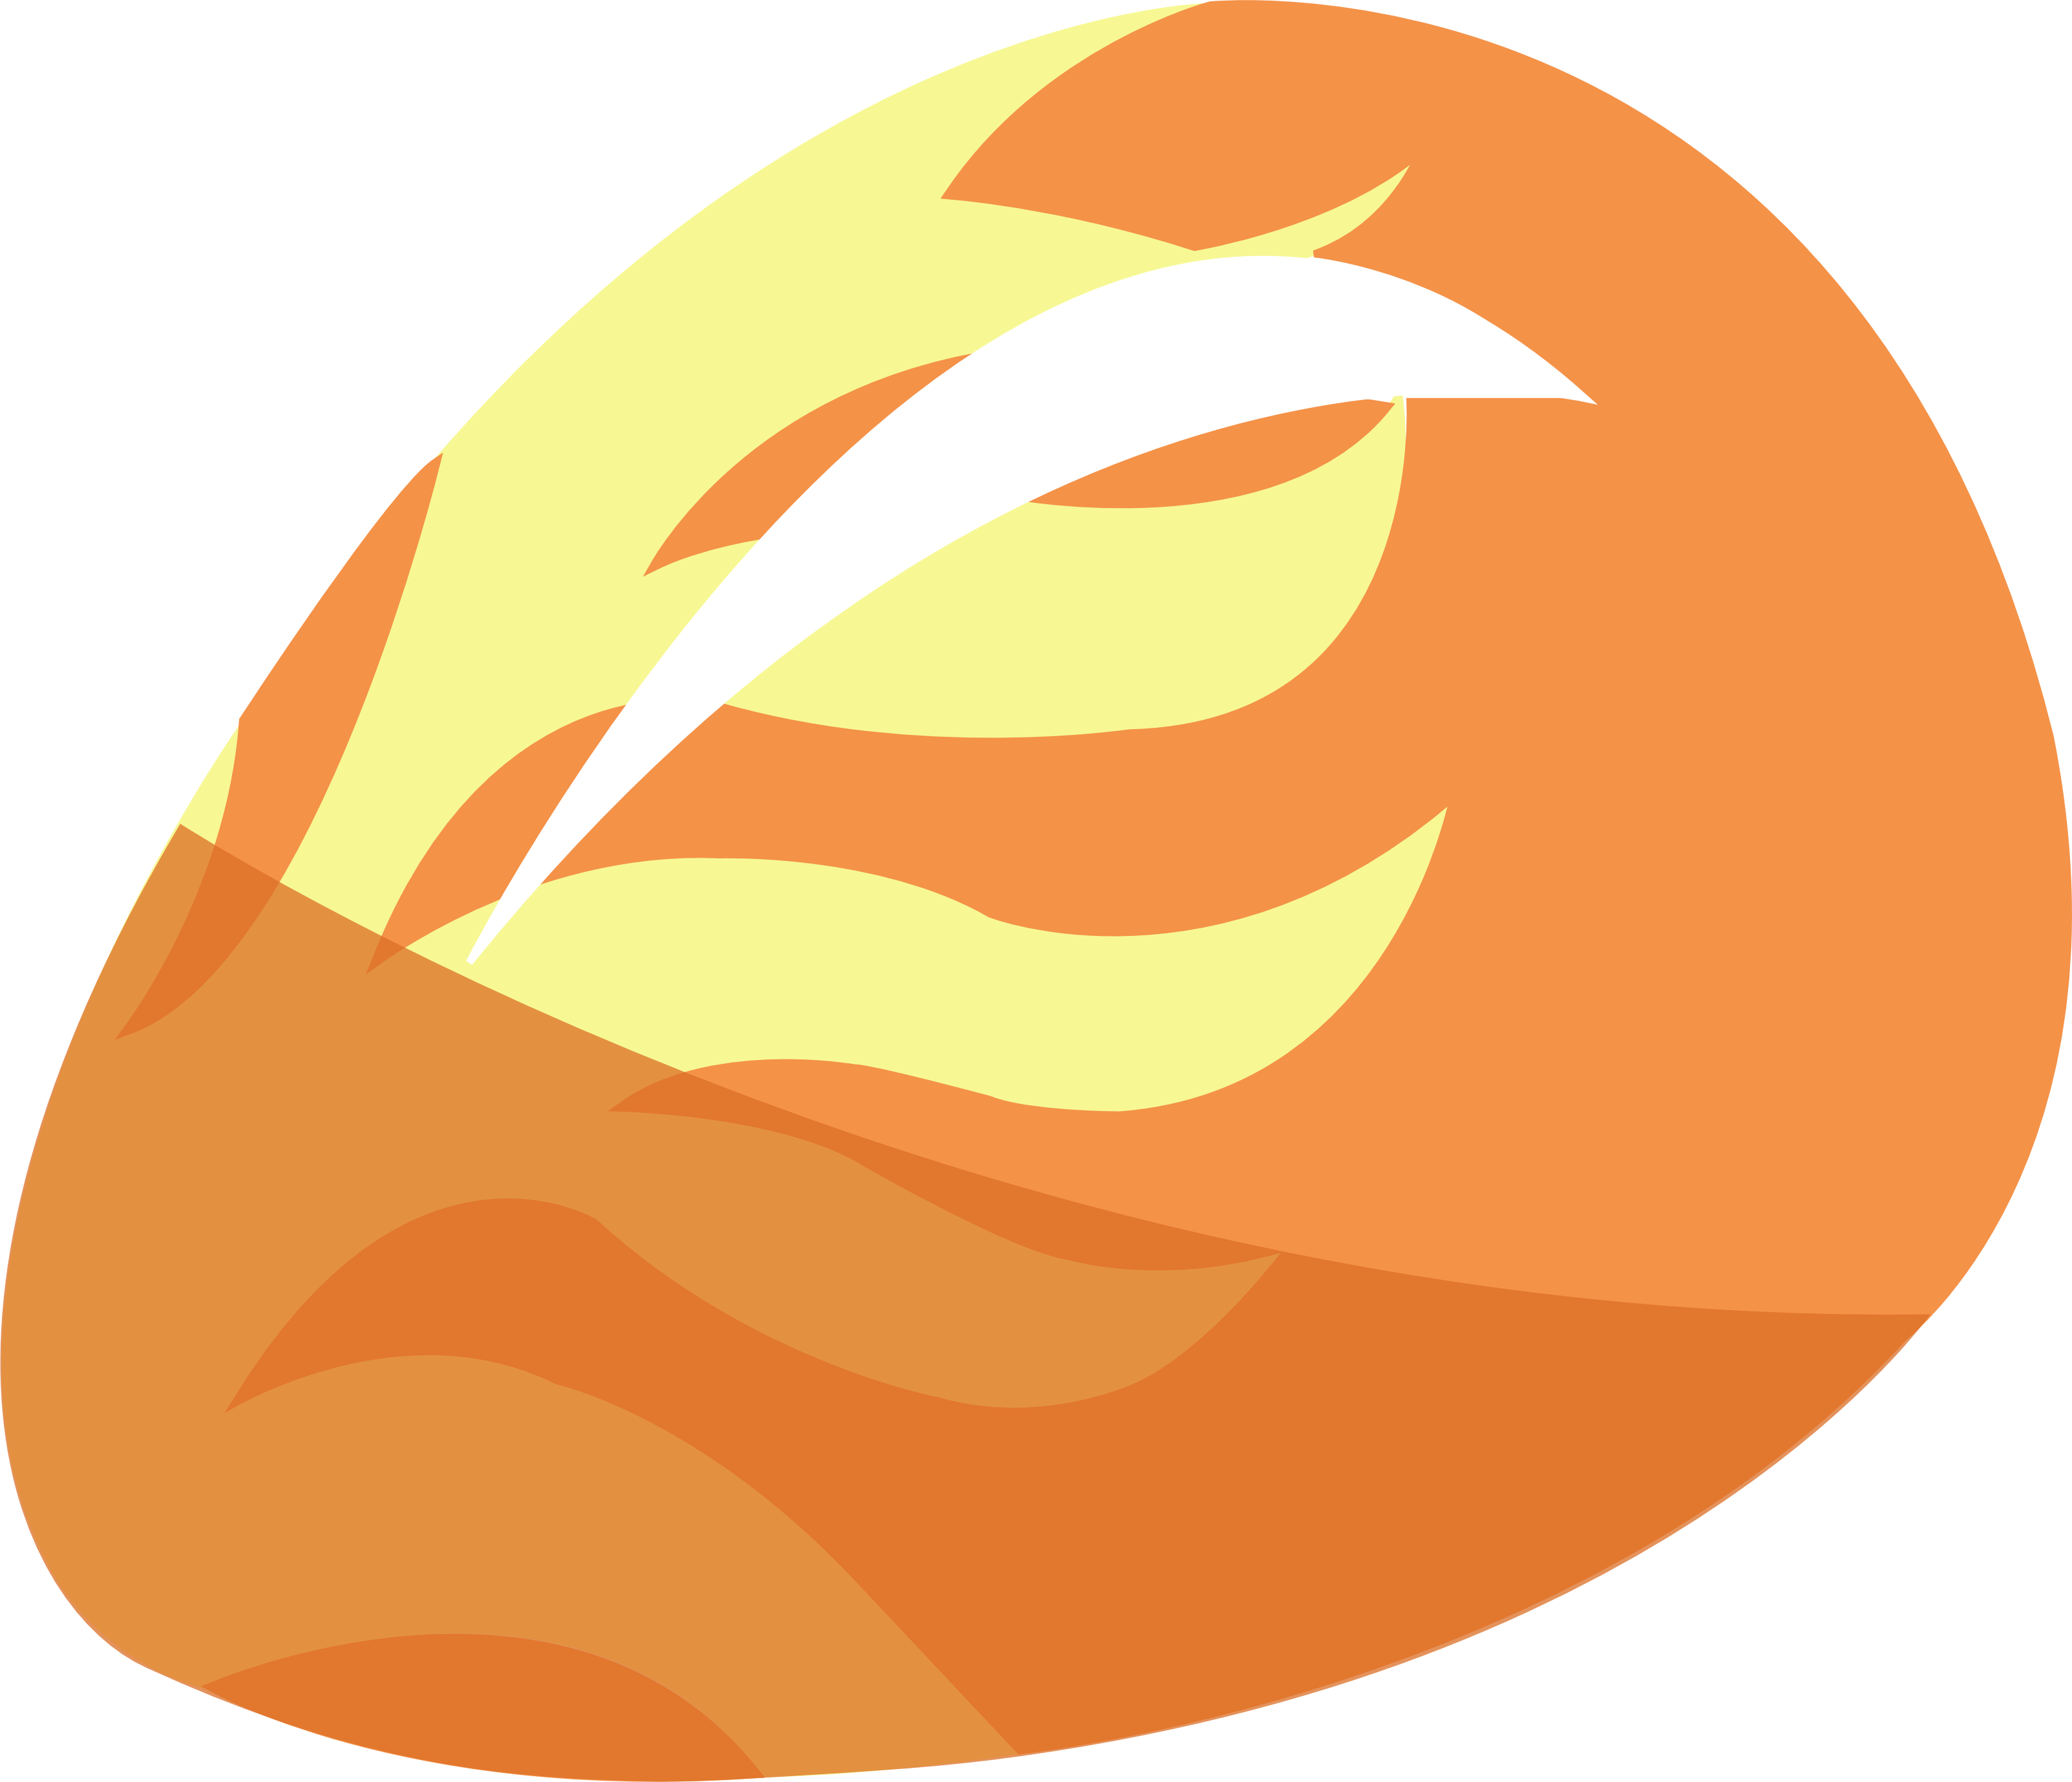 Egg falling png. Phoenix by theseventhstorm on